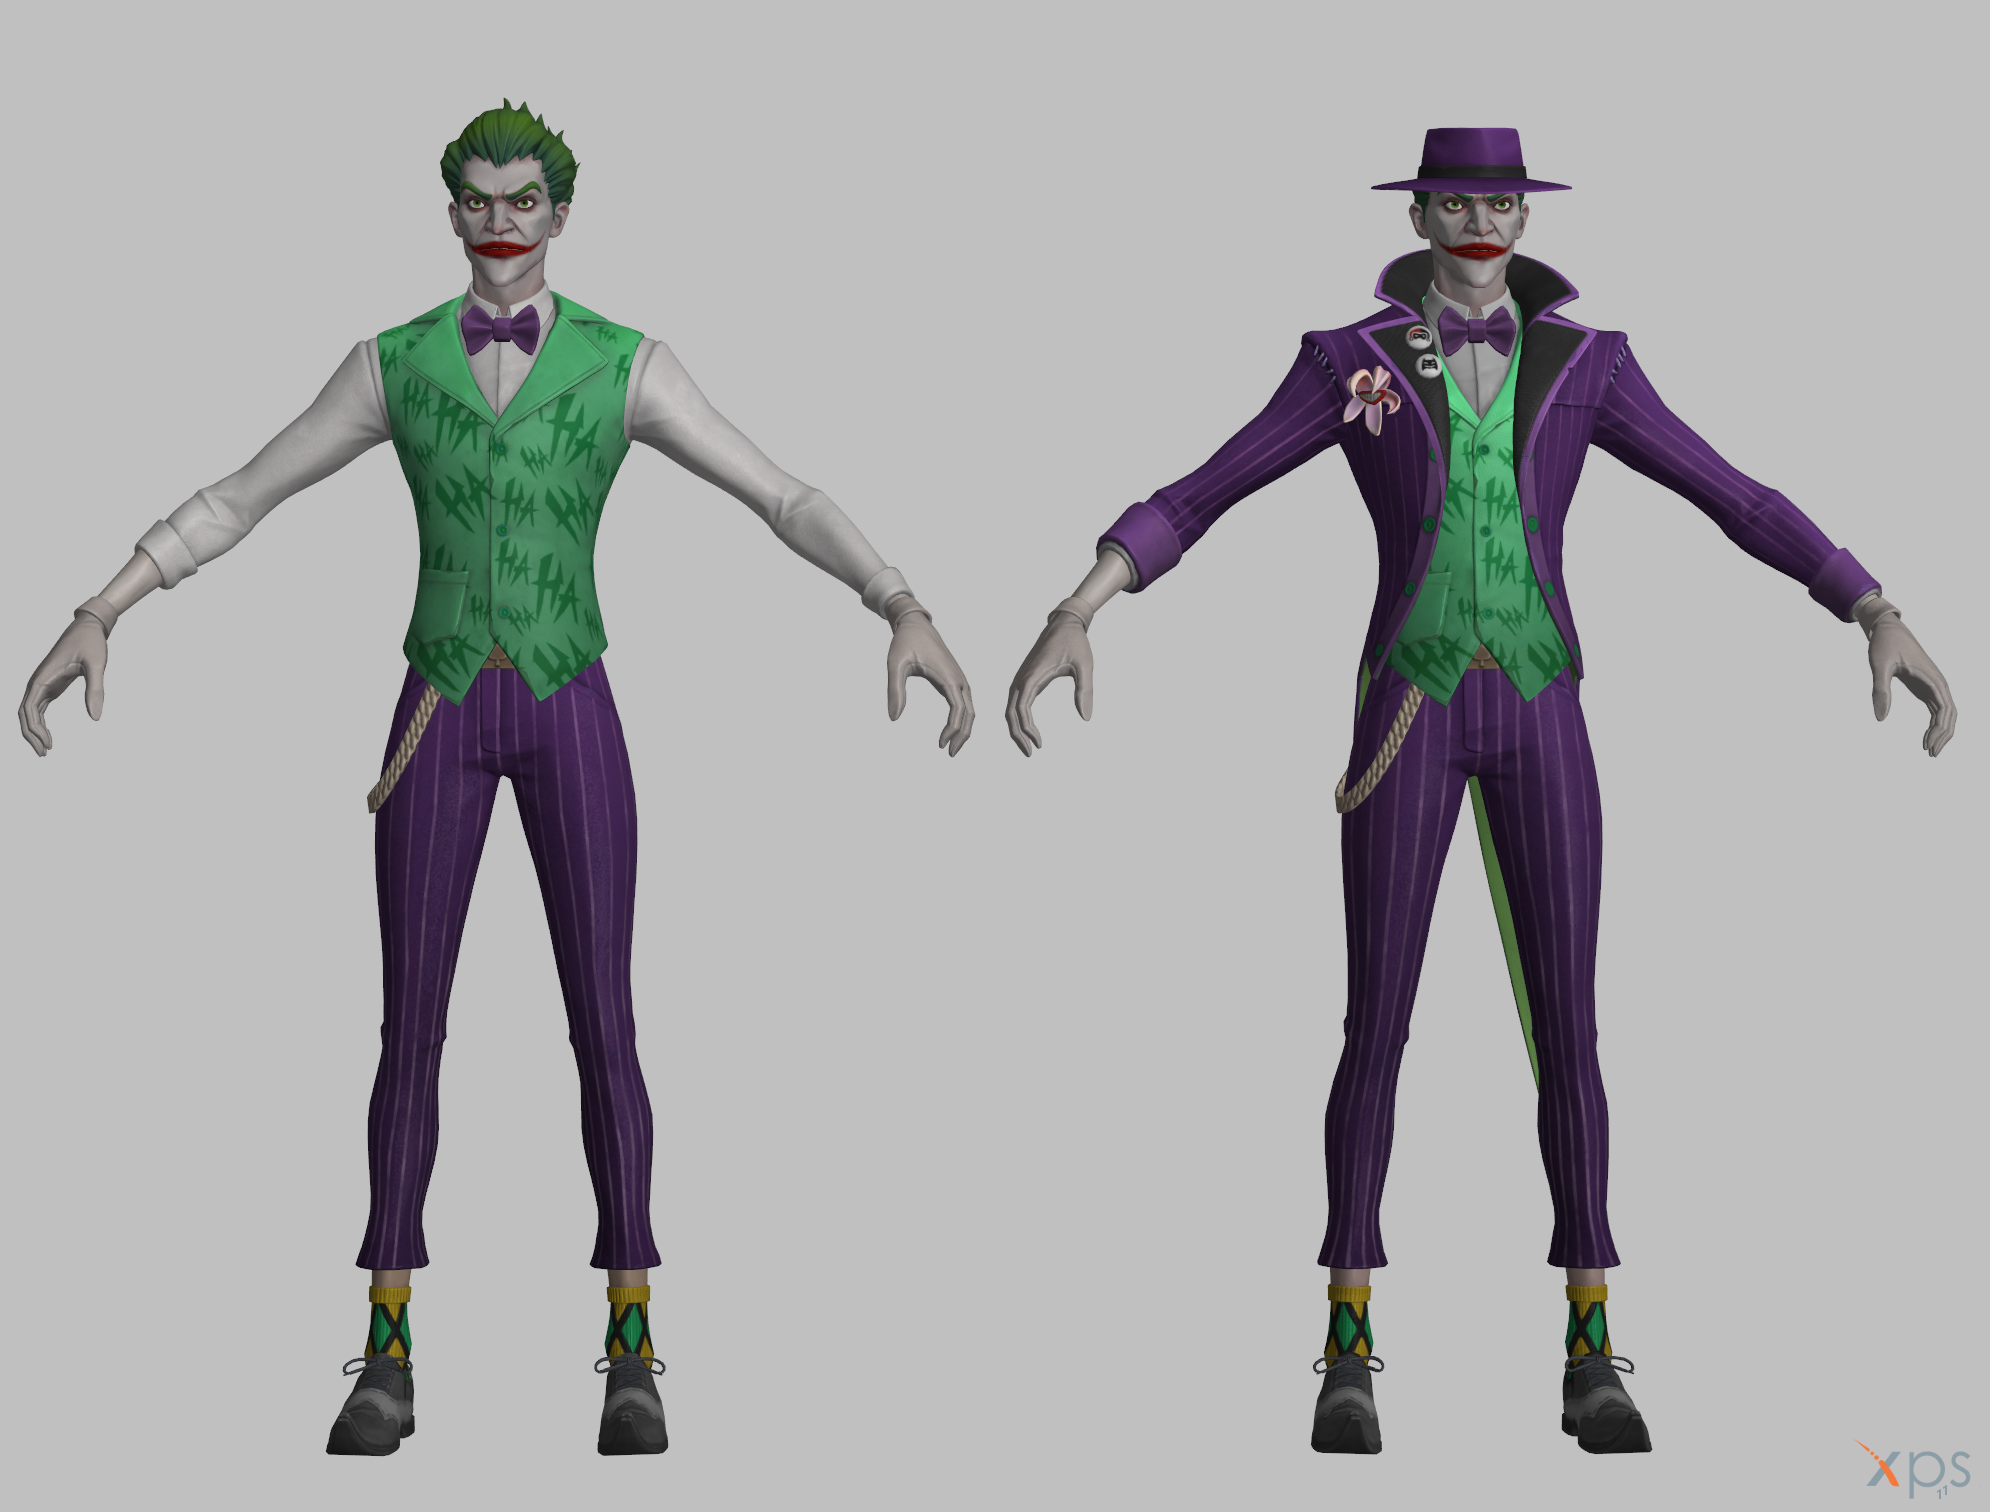 Fortnite Joker By Vasiaklimov On Deviantart The last laugh bundle is now available, giving players access to two of batman's deadliest enemies alongside a multitude of weapons and dlc perks. fortnite joker by vasiaklimov on